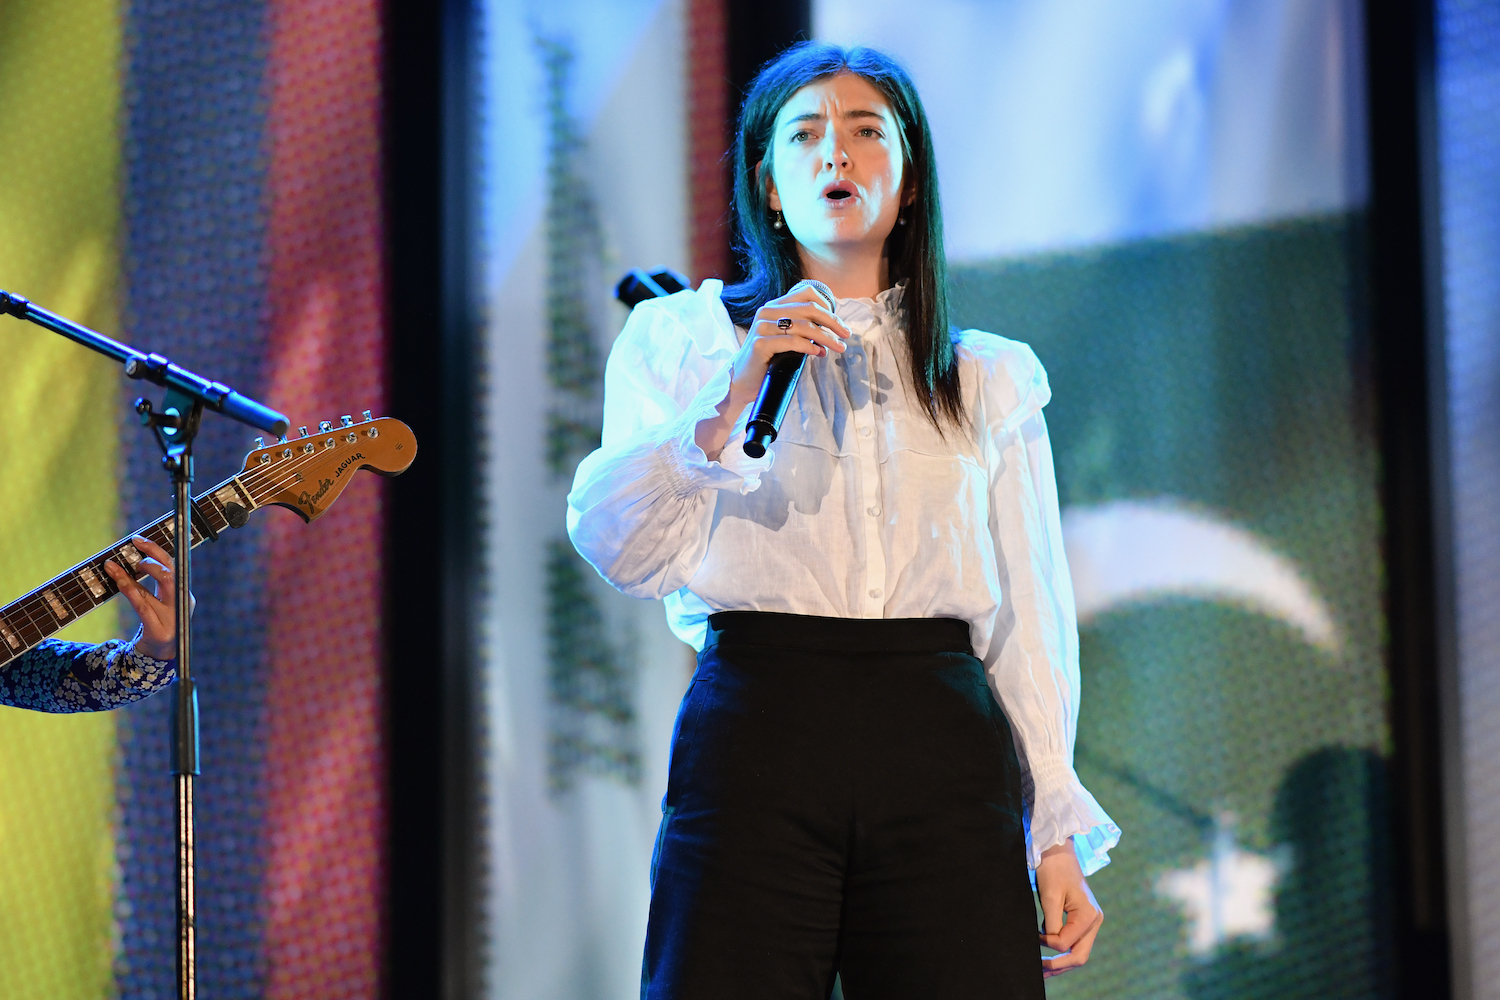 Lorde Is Returning To A Pop Mainstream Made In Her Own Image. Where's She Been In The Meantime?